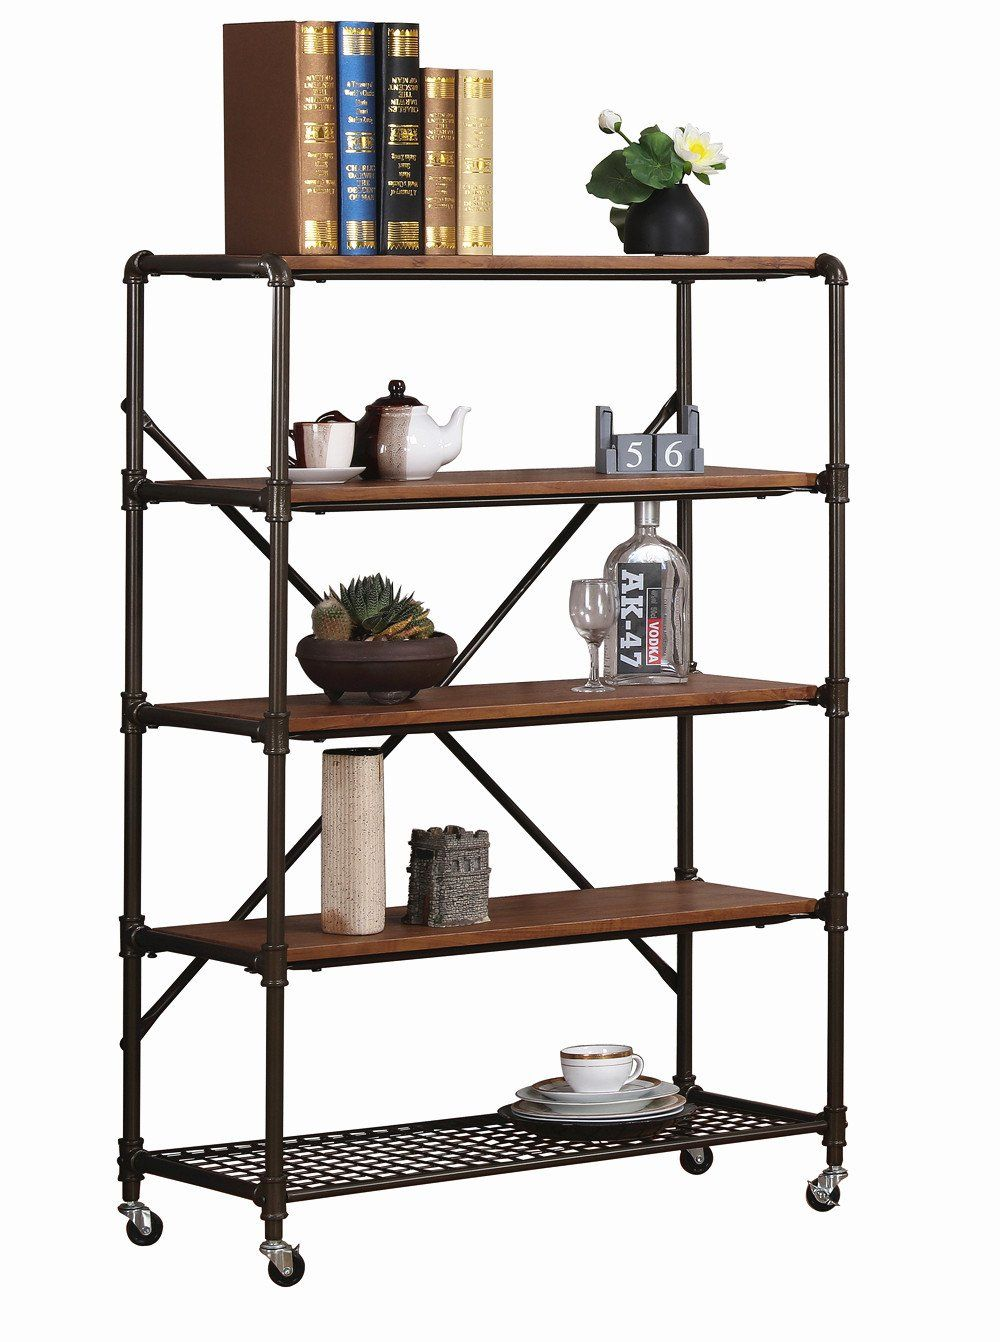 Ok furniture 5 shelf industrial bookshelf with wheels display storage rack 45 5h